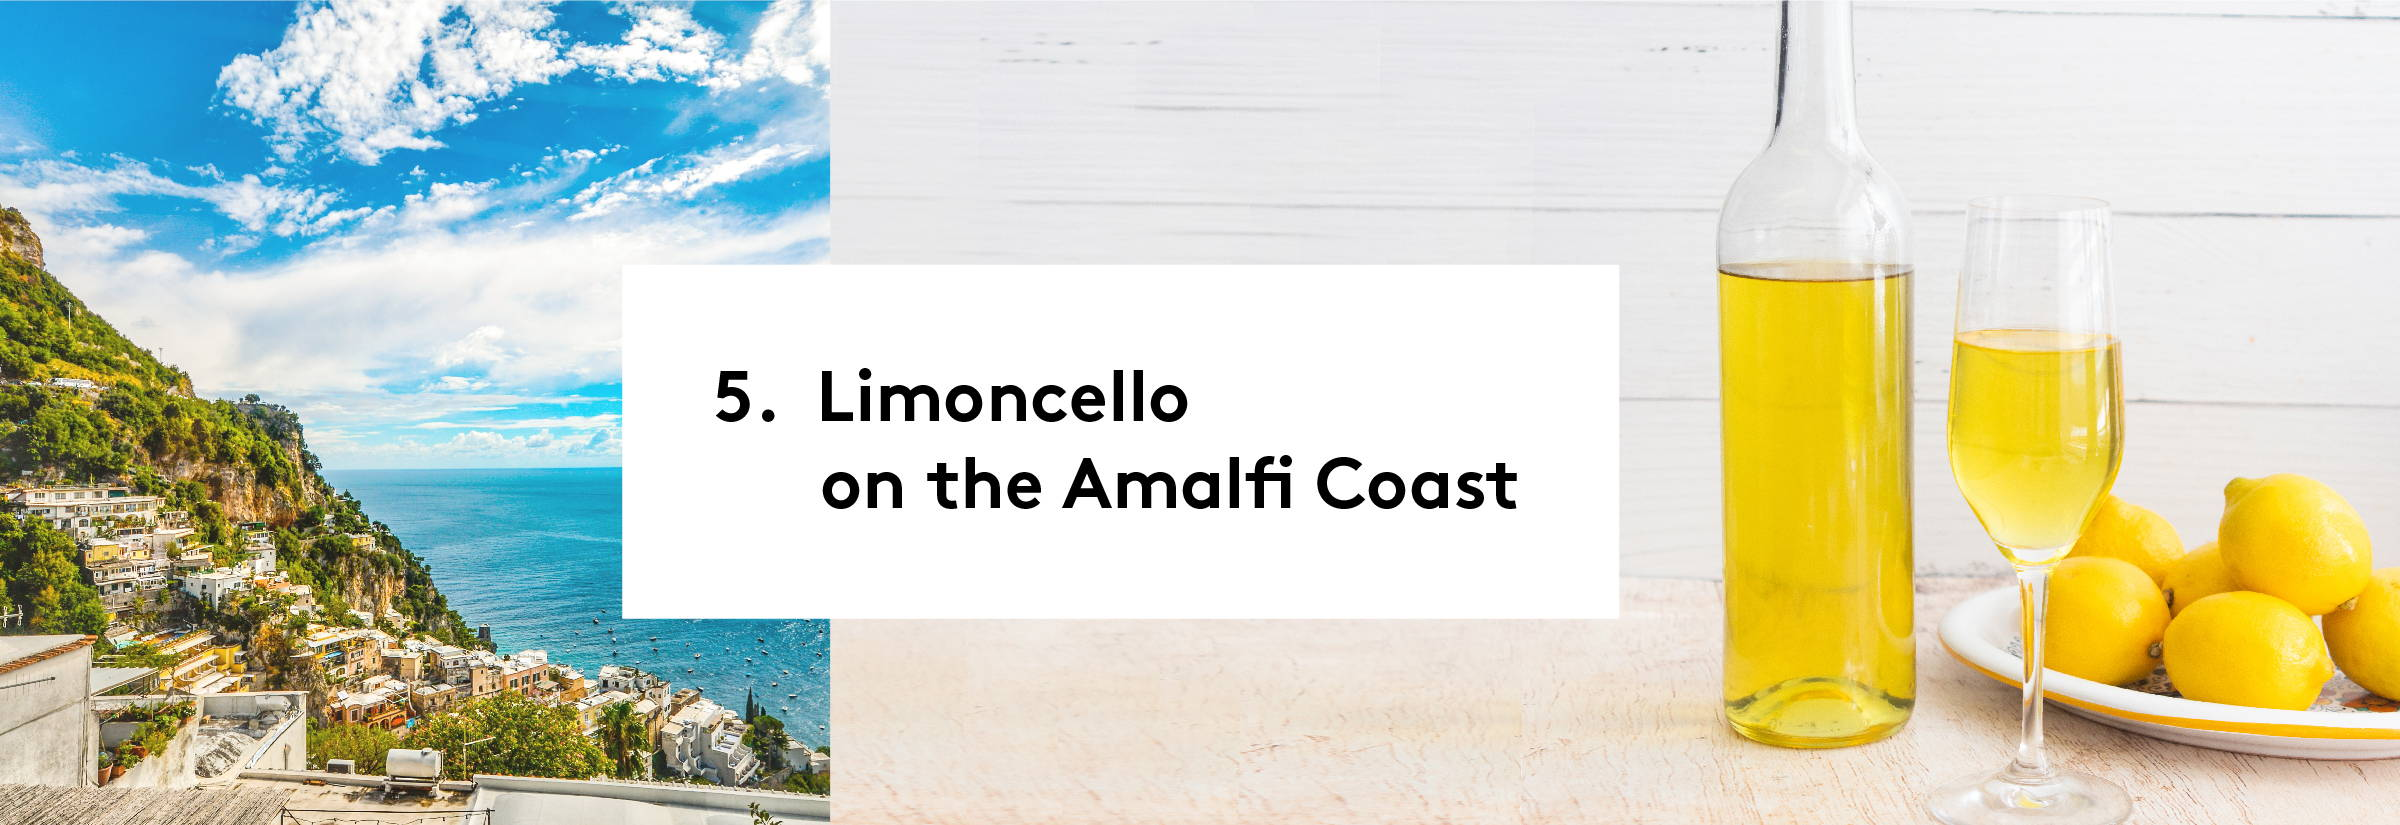 5. Limoncello on the Amalfi Coast